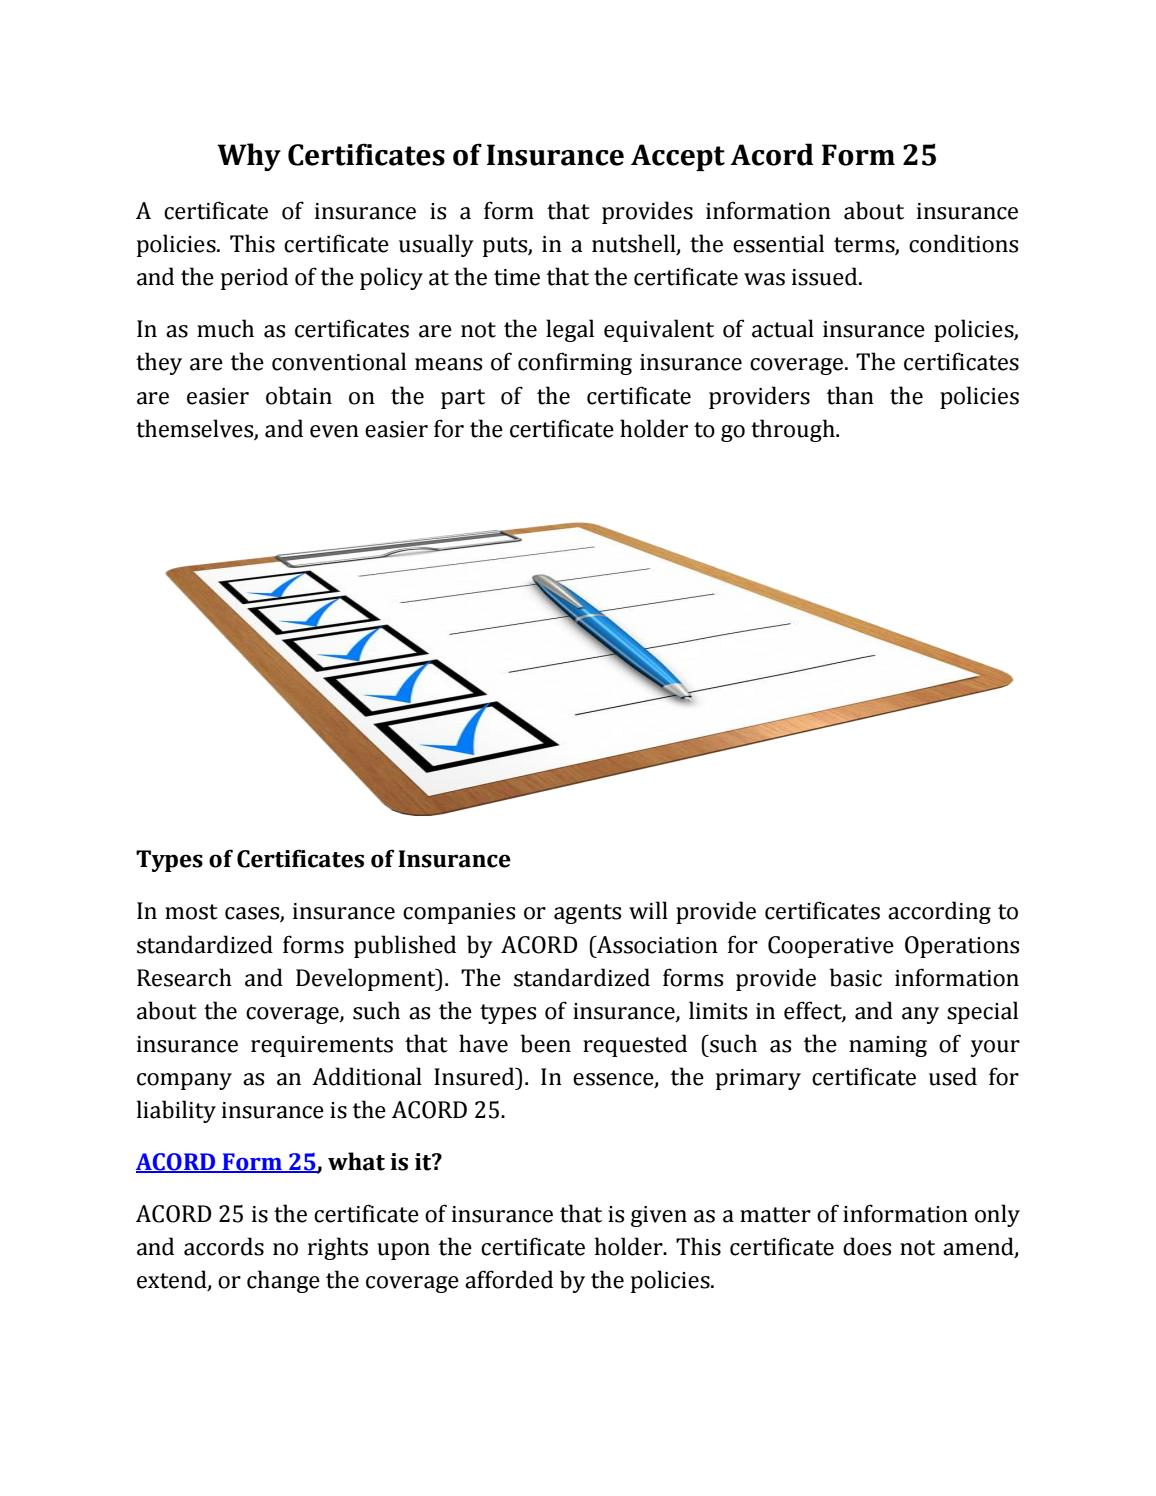 Why Certificates of Insurance Accept Acord Form 25 by JDICTRAX - issuu